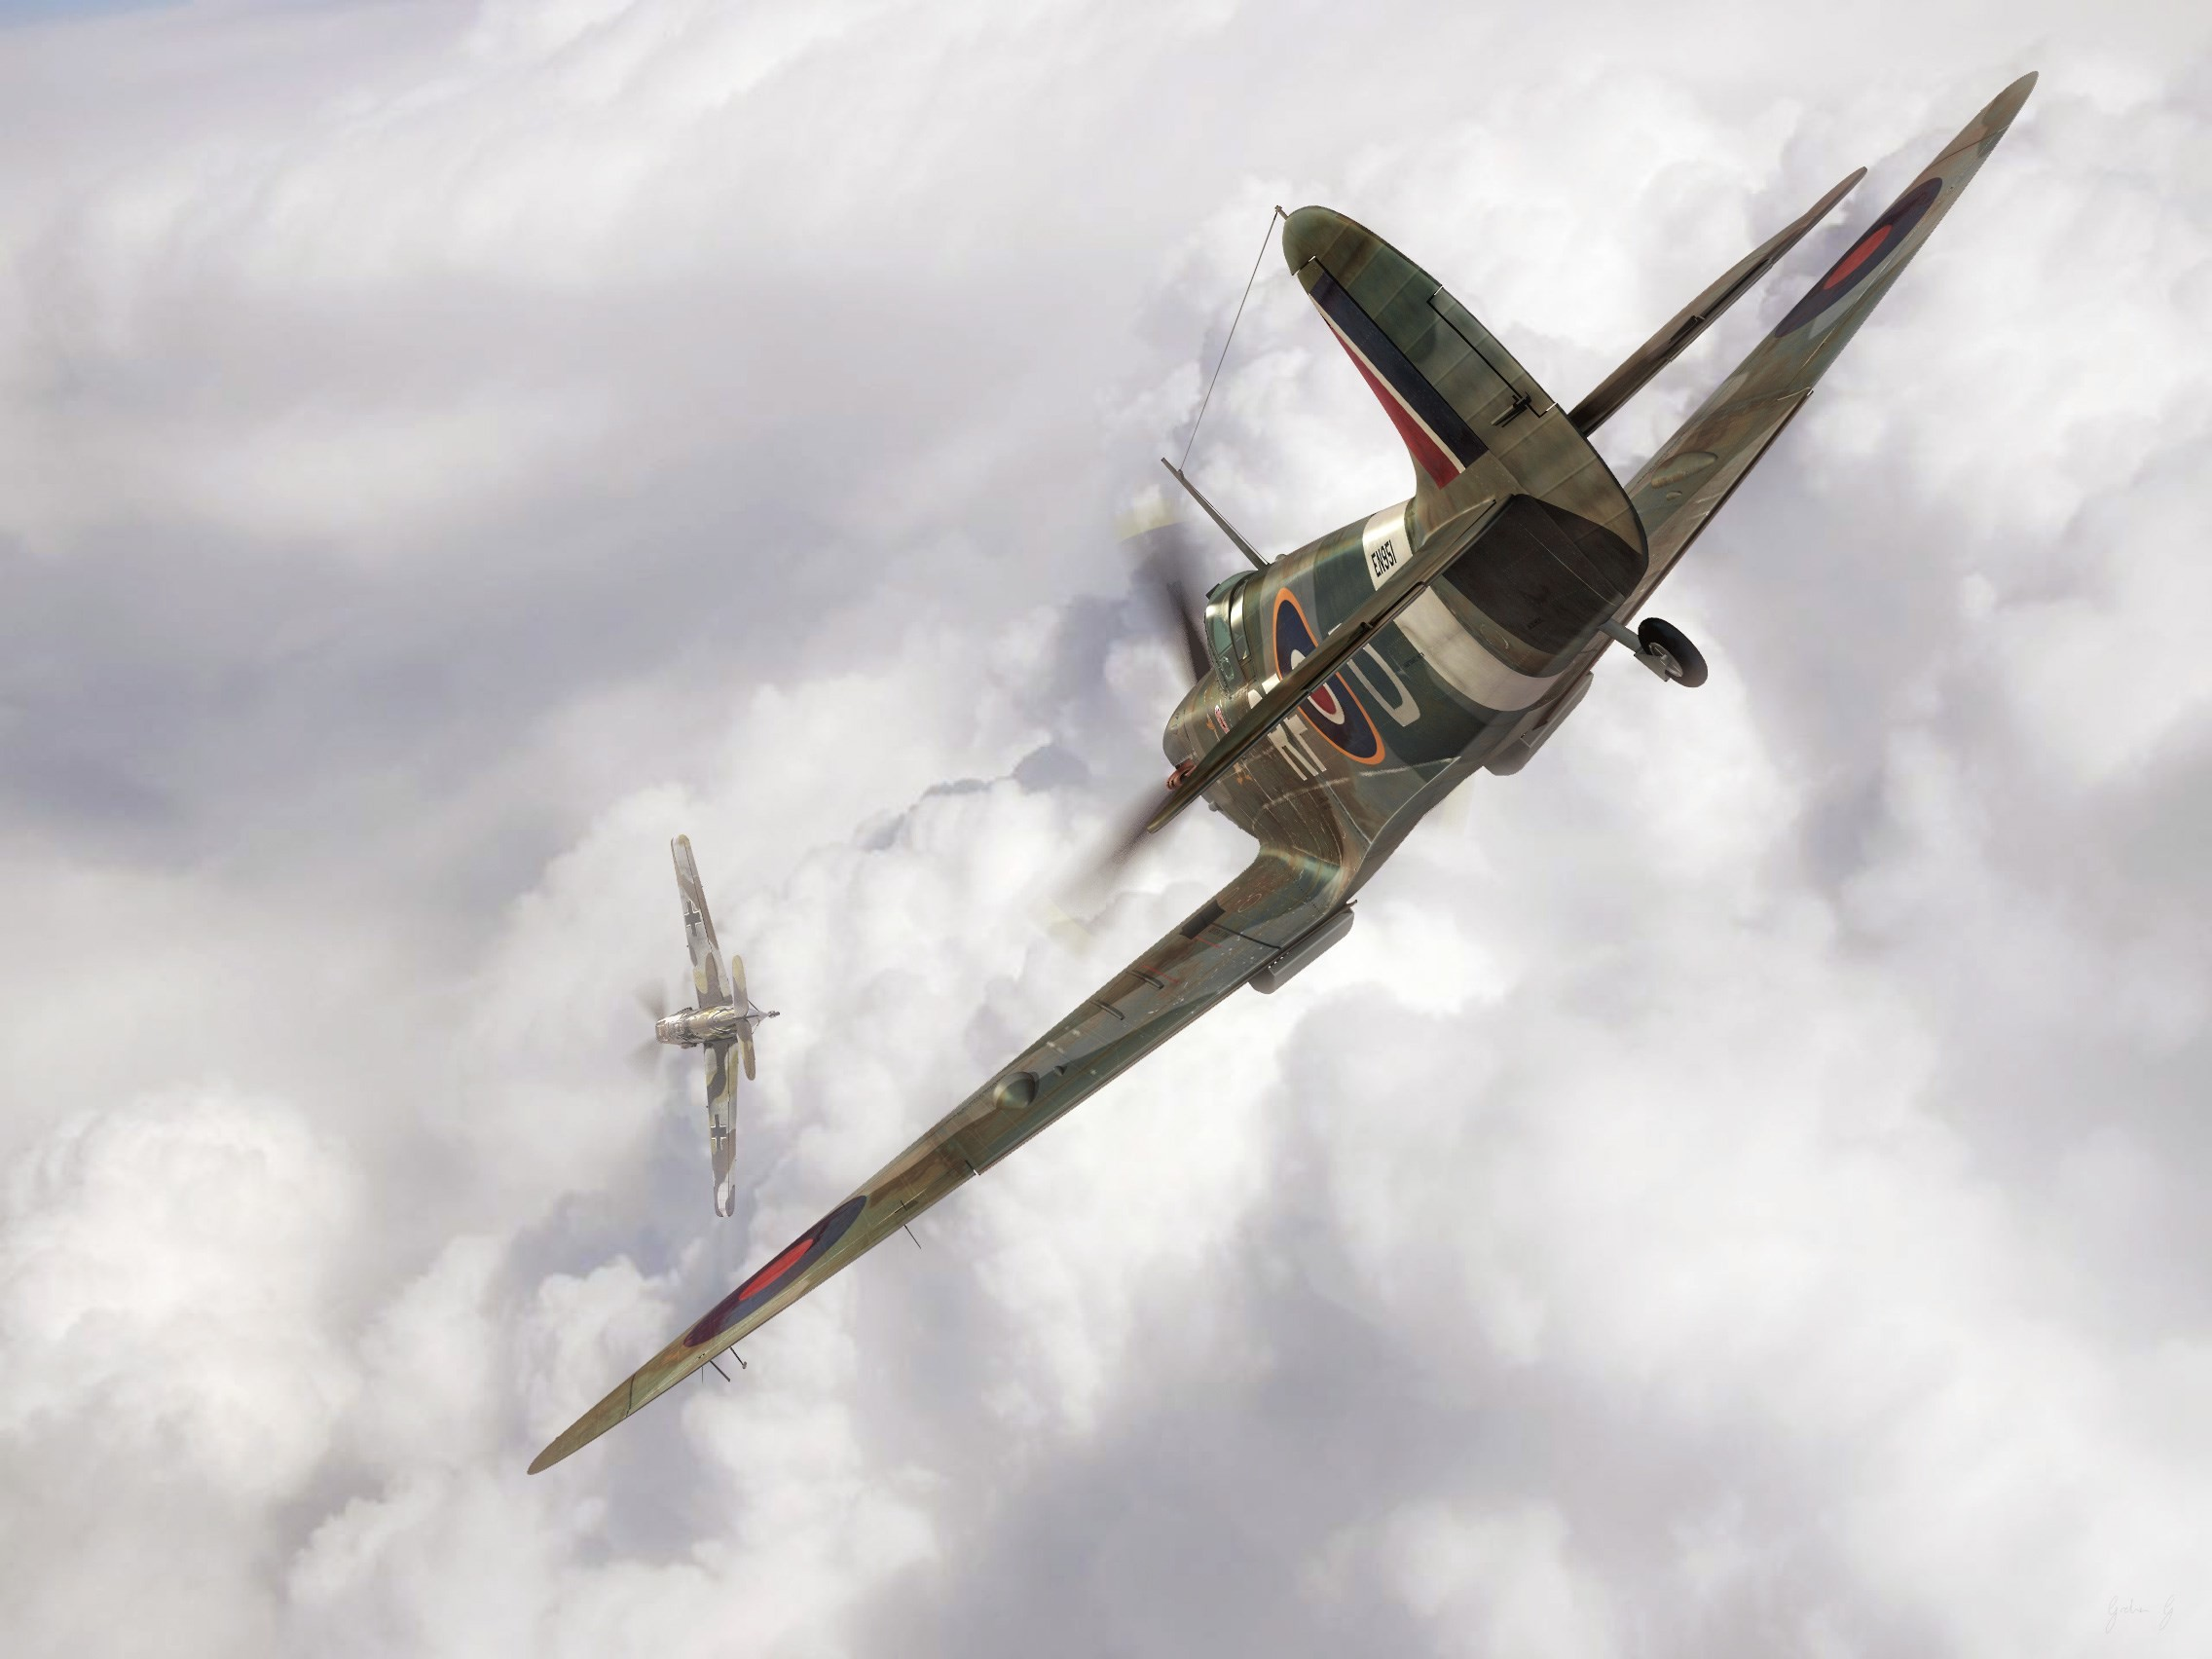 2272x1704 Widescreen Wallpapers: supermarine spitfire picture,  (285 kB)